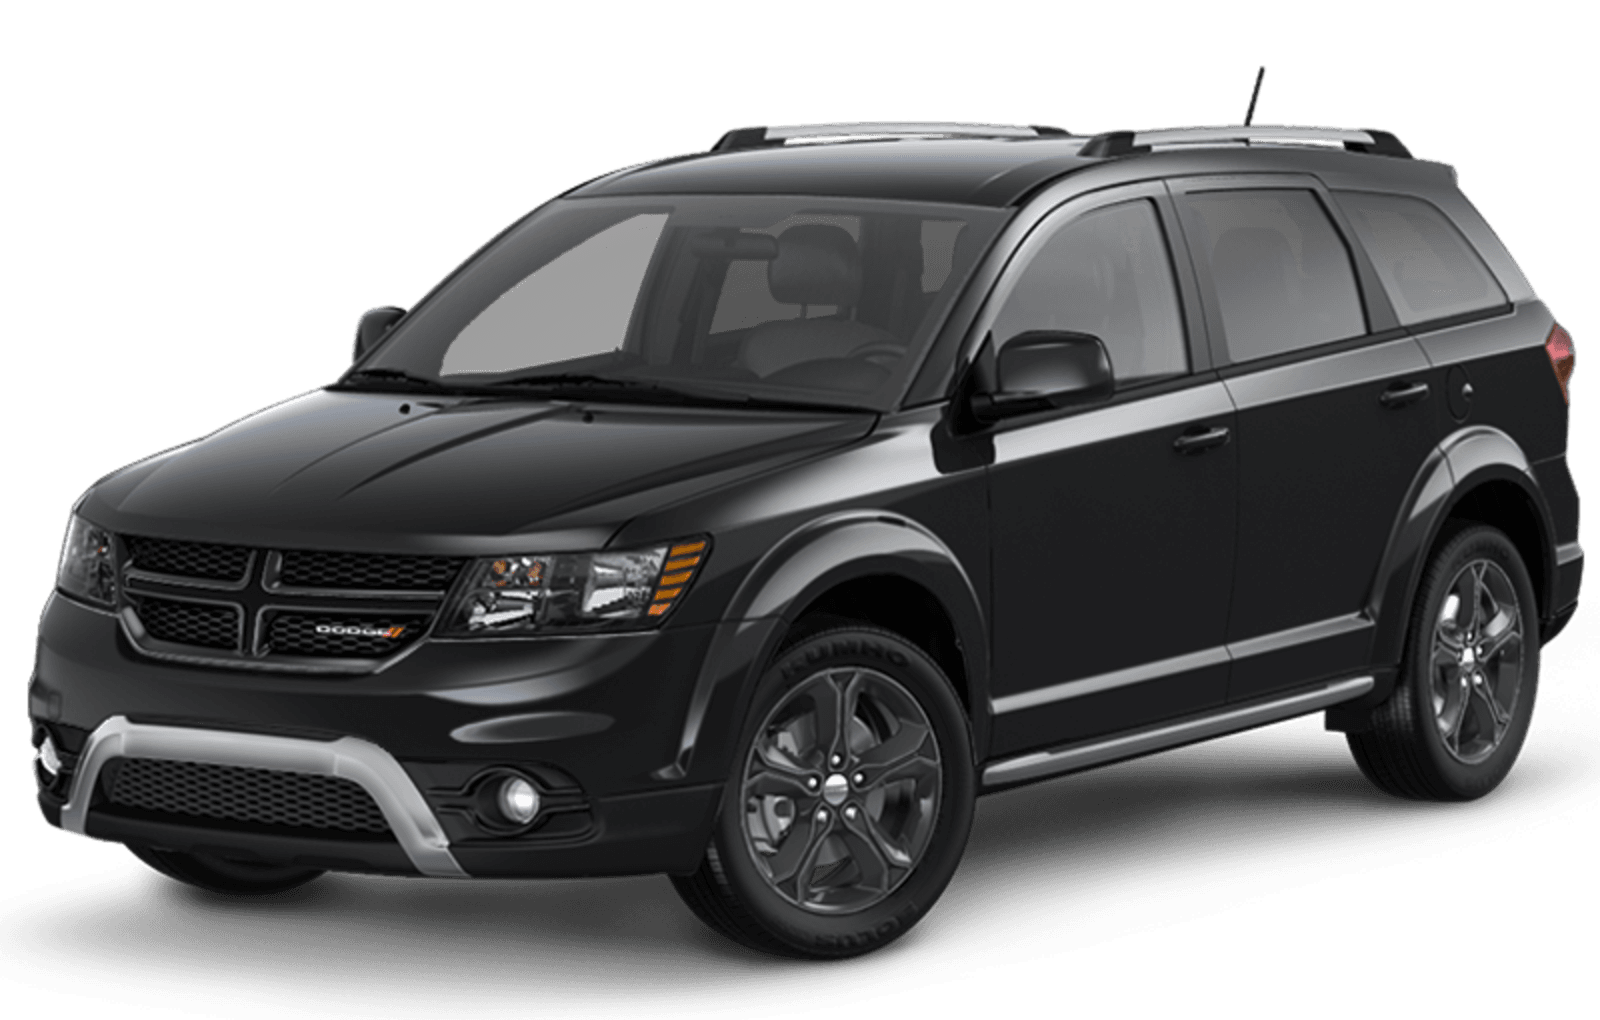 87 New 2019 Dodge Journey First Drive